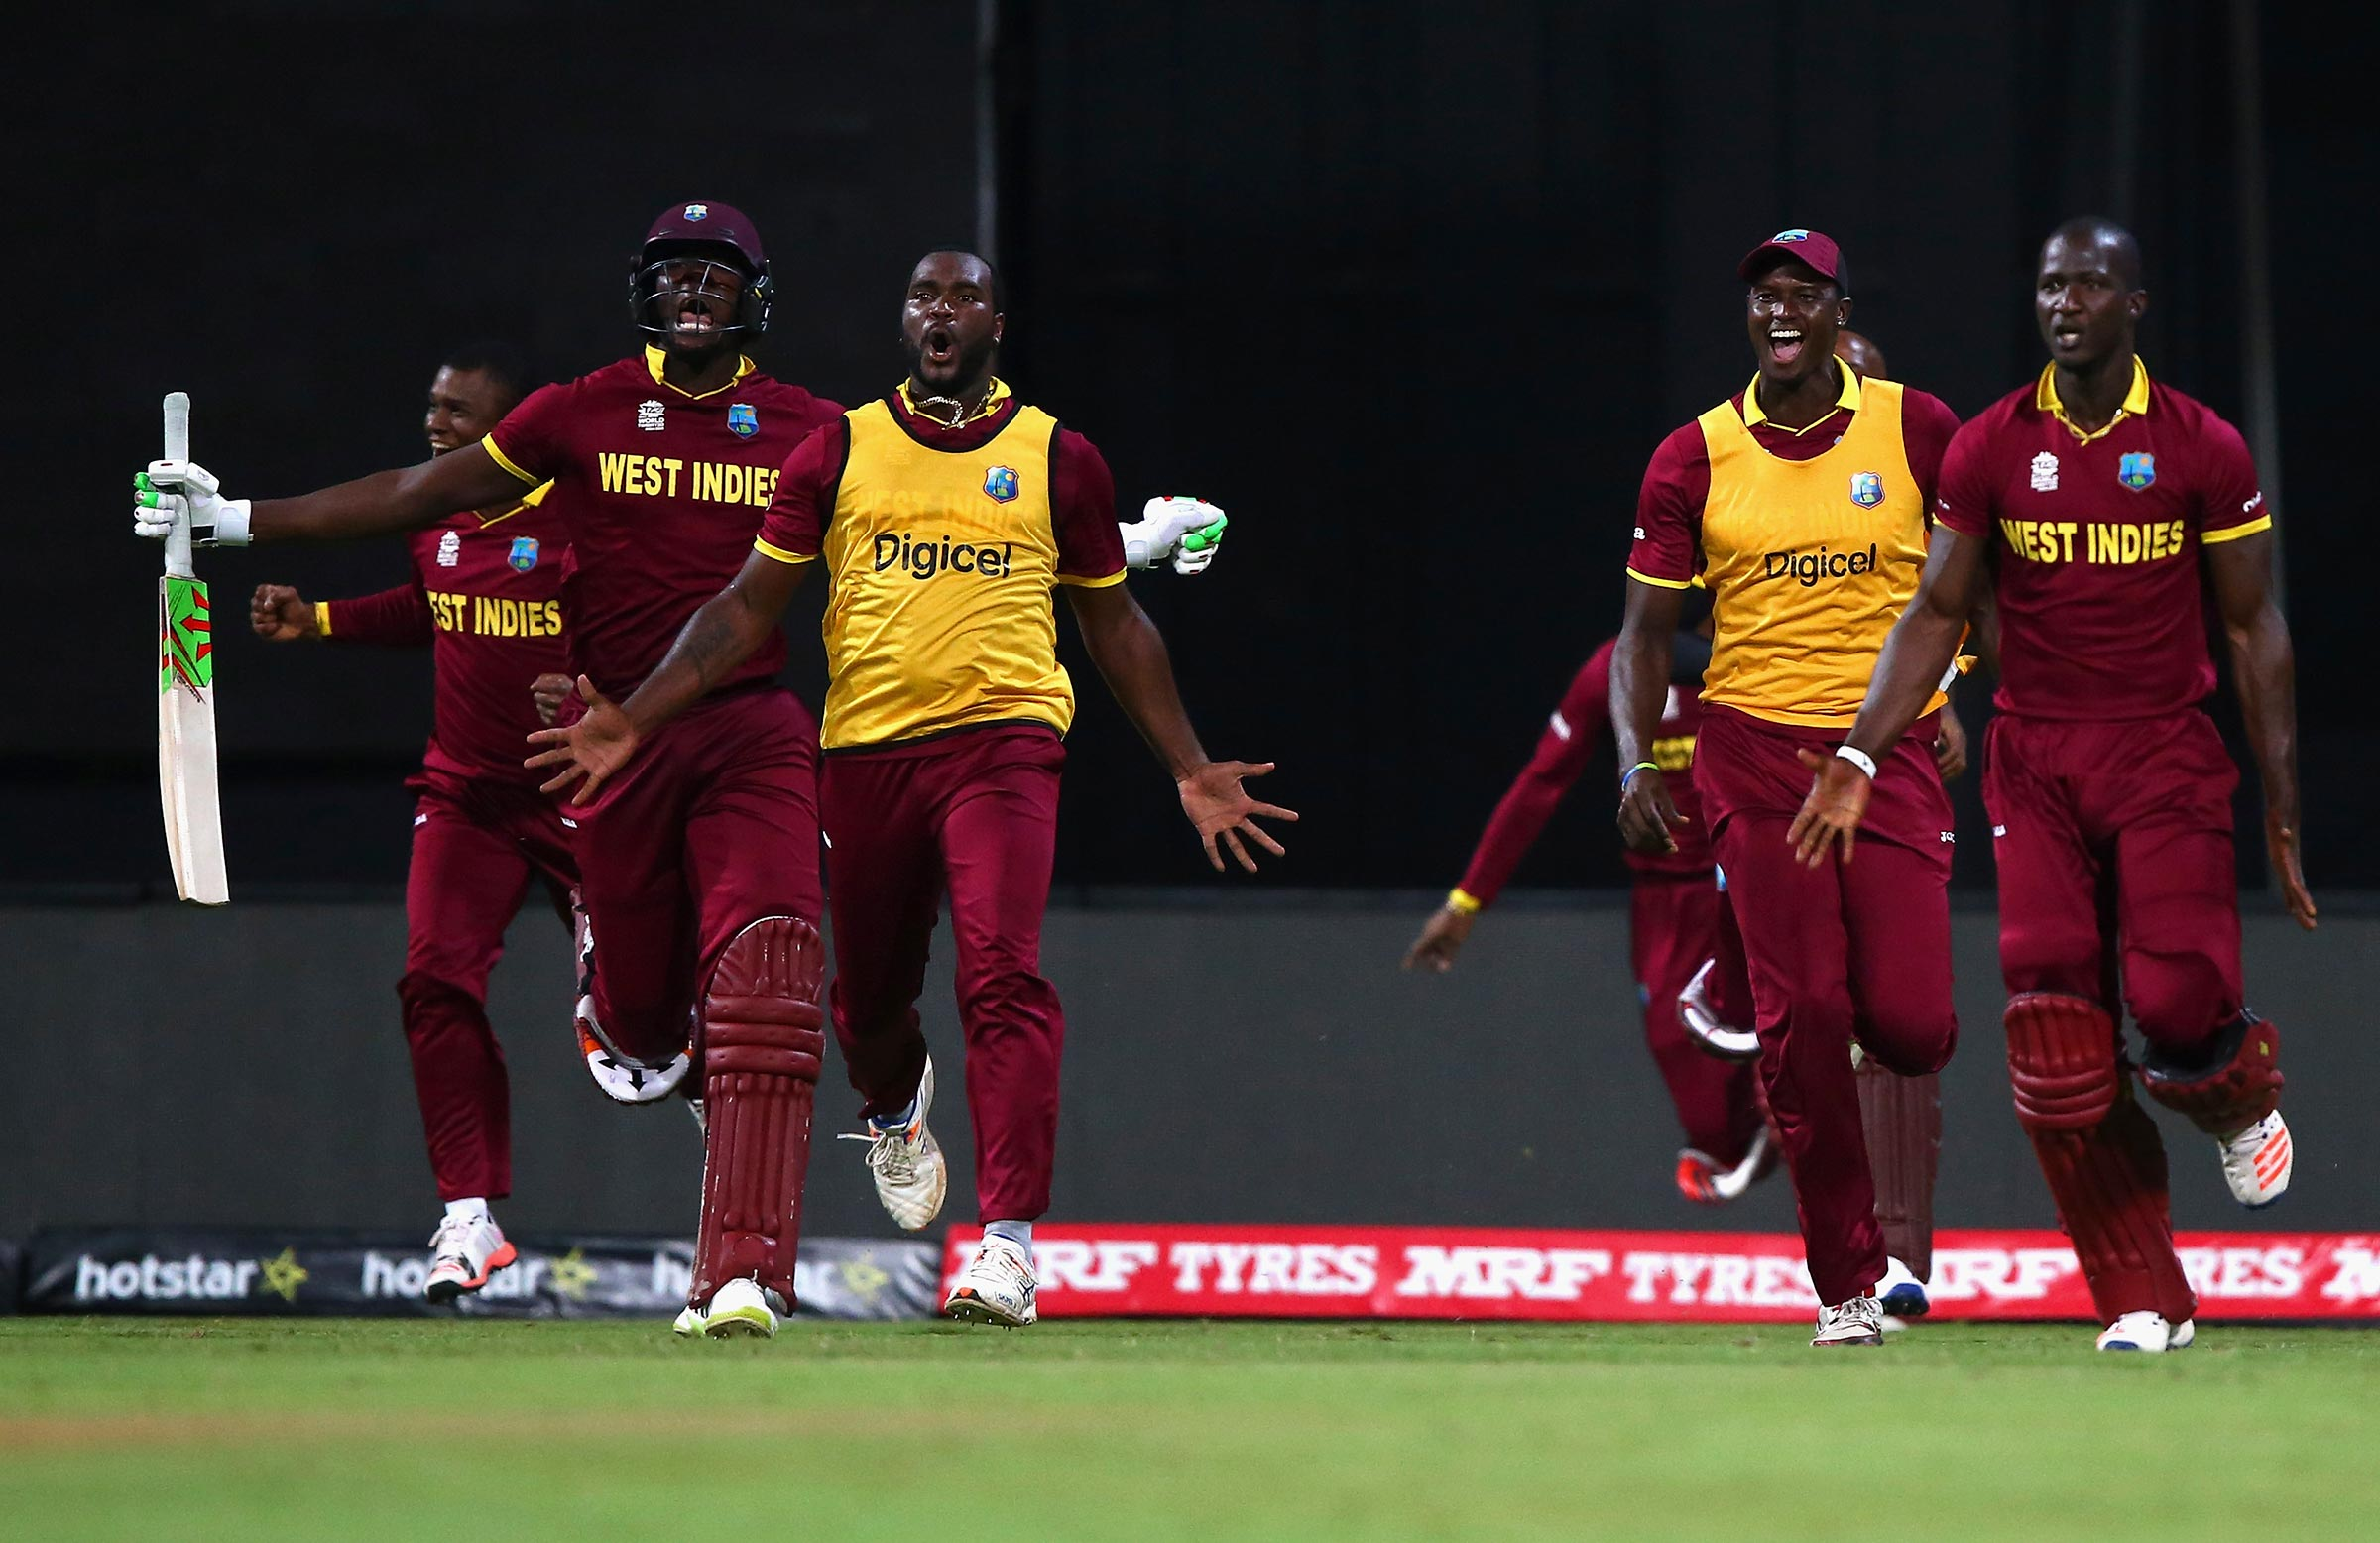 The Windies will defend their 2016 title // Getty